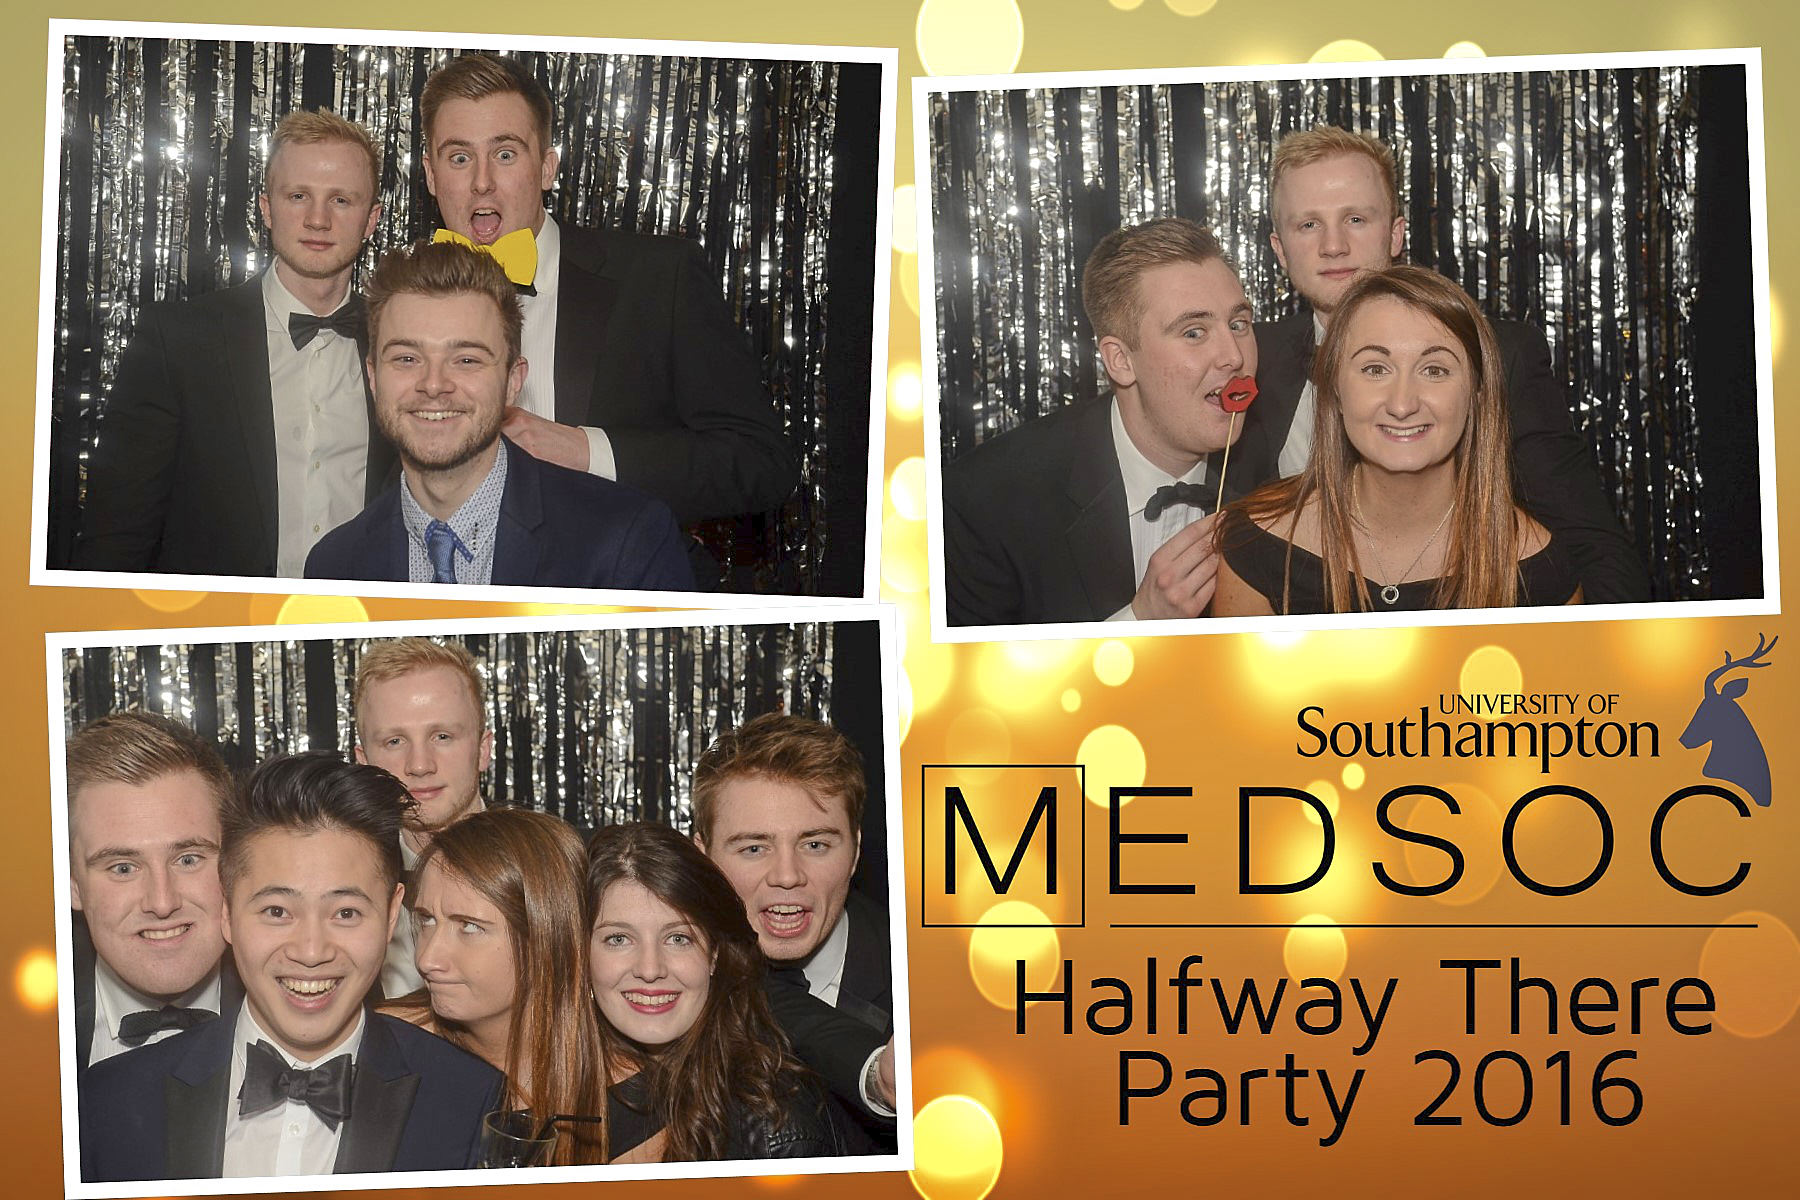 MedSoc Halfway There Party 2016 DS012543.jpg